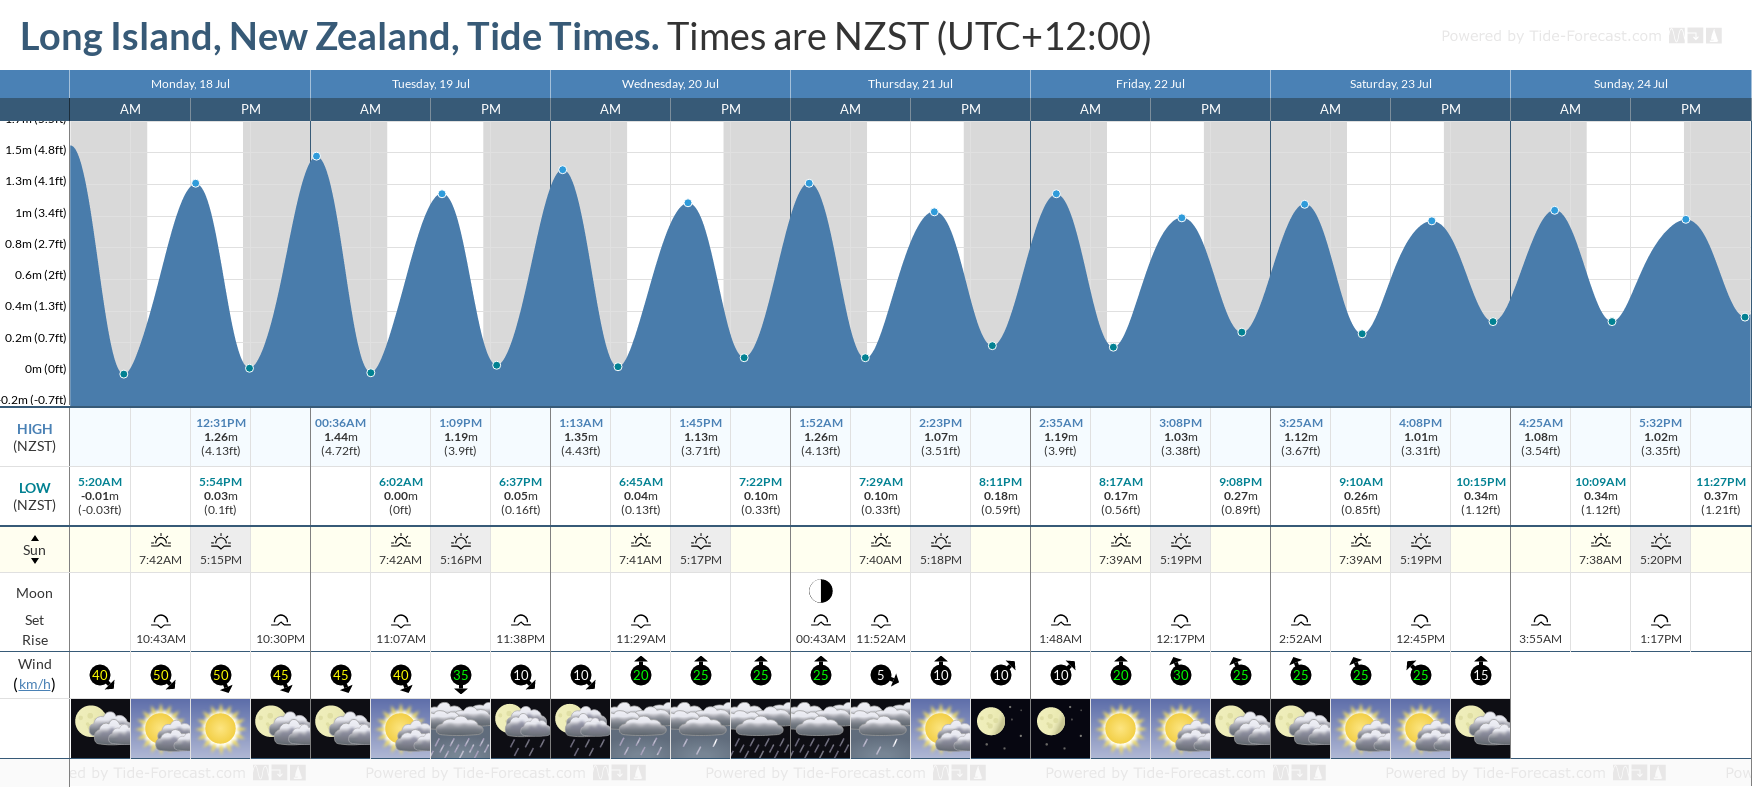 Long Island, New Zealand Tide Chart including high and low tide tide times for the next 7 days